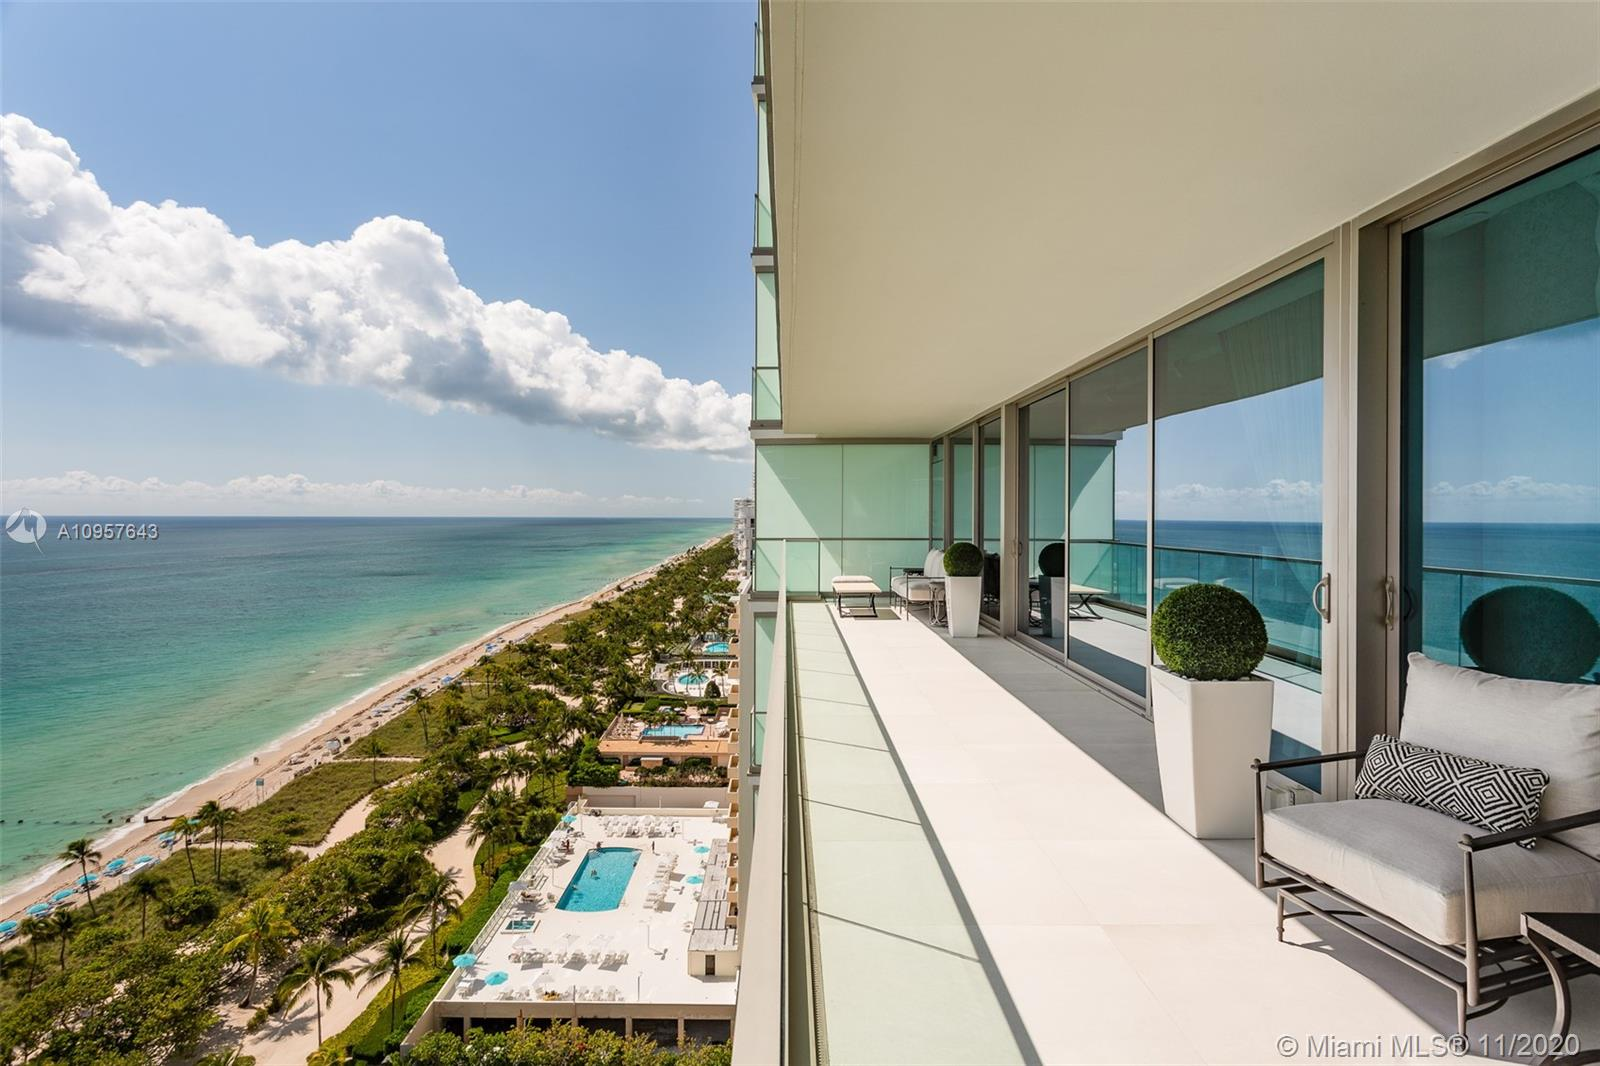 10201 Collins Ave, Unit #1706 Luxury Real Estate